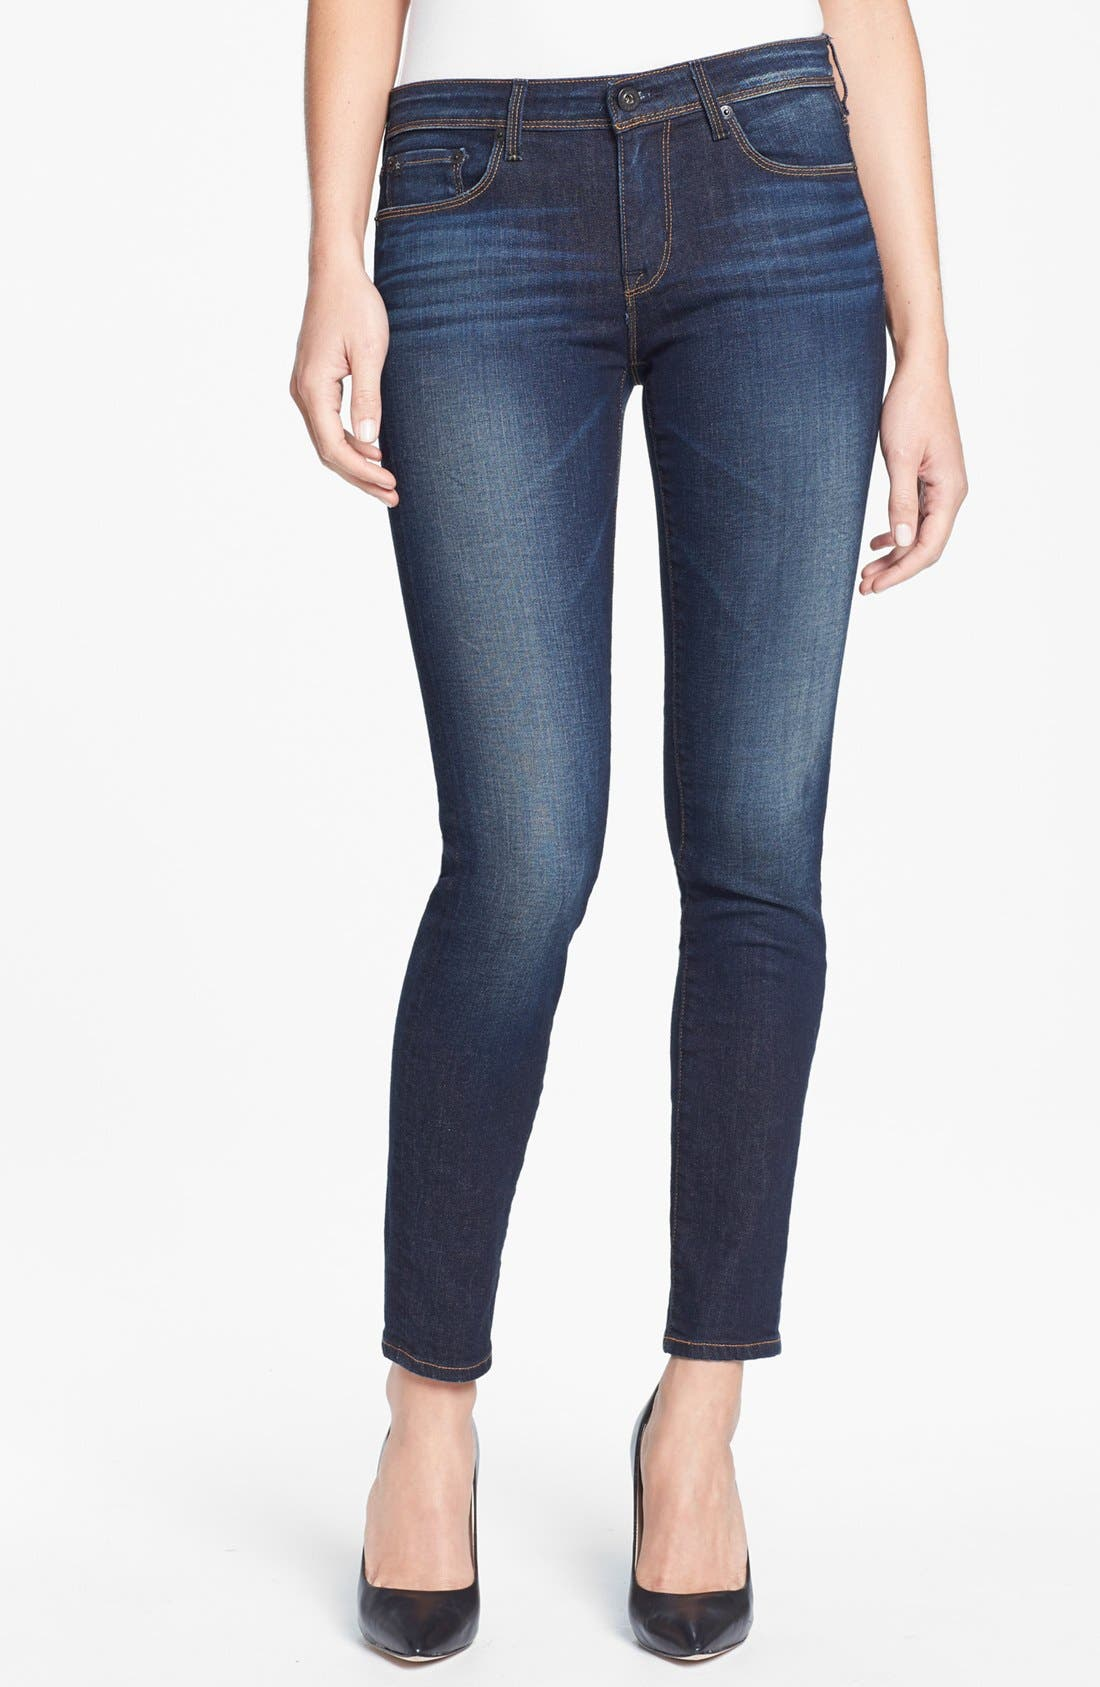 Alternate Image 1 Selected - Big Star 'Alex' Stretch Skinny Jeans (Valencia) (Petite)